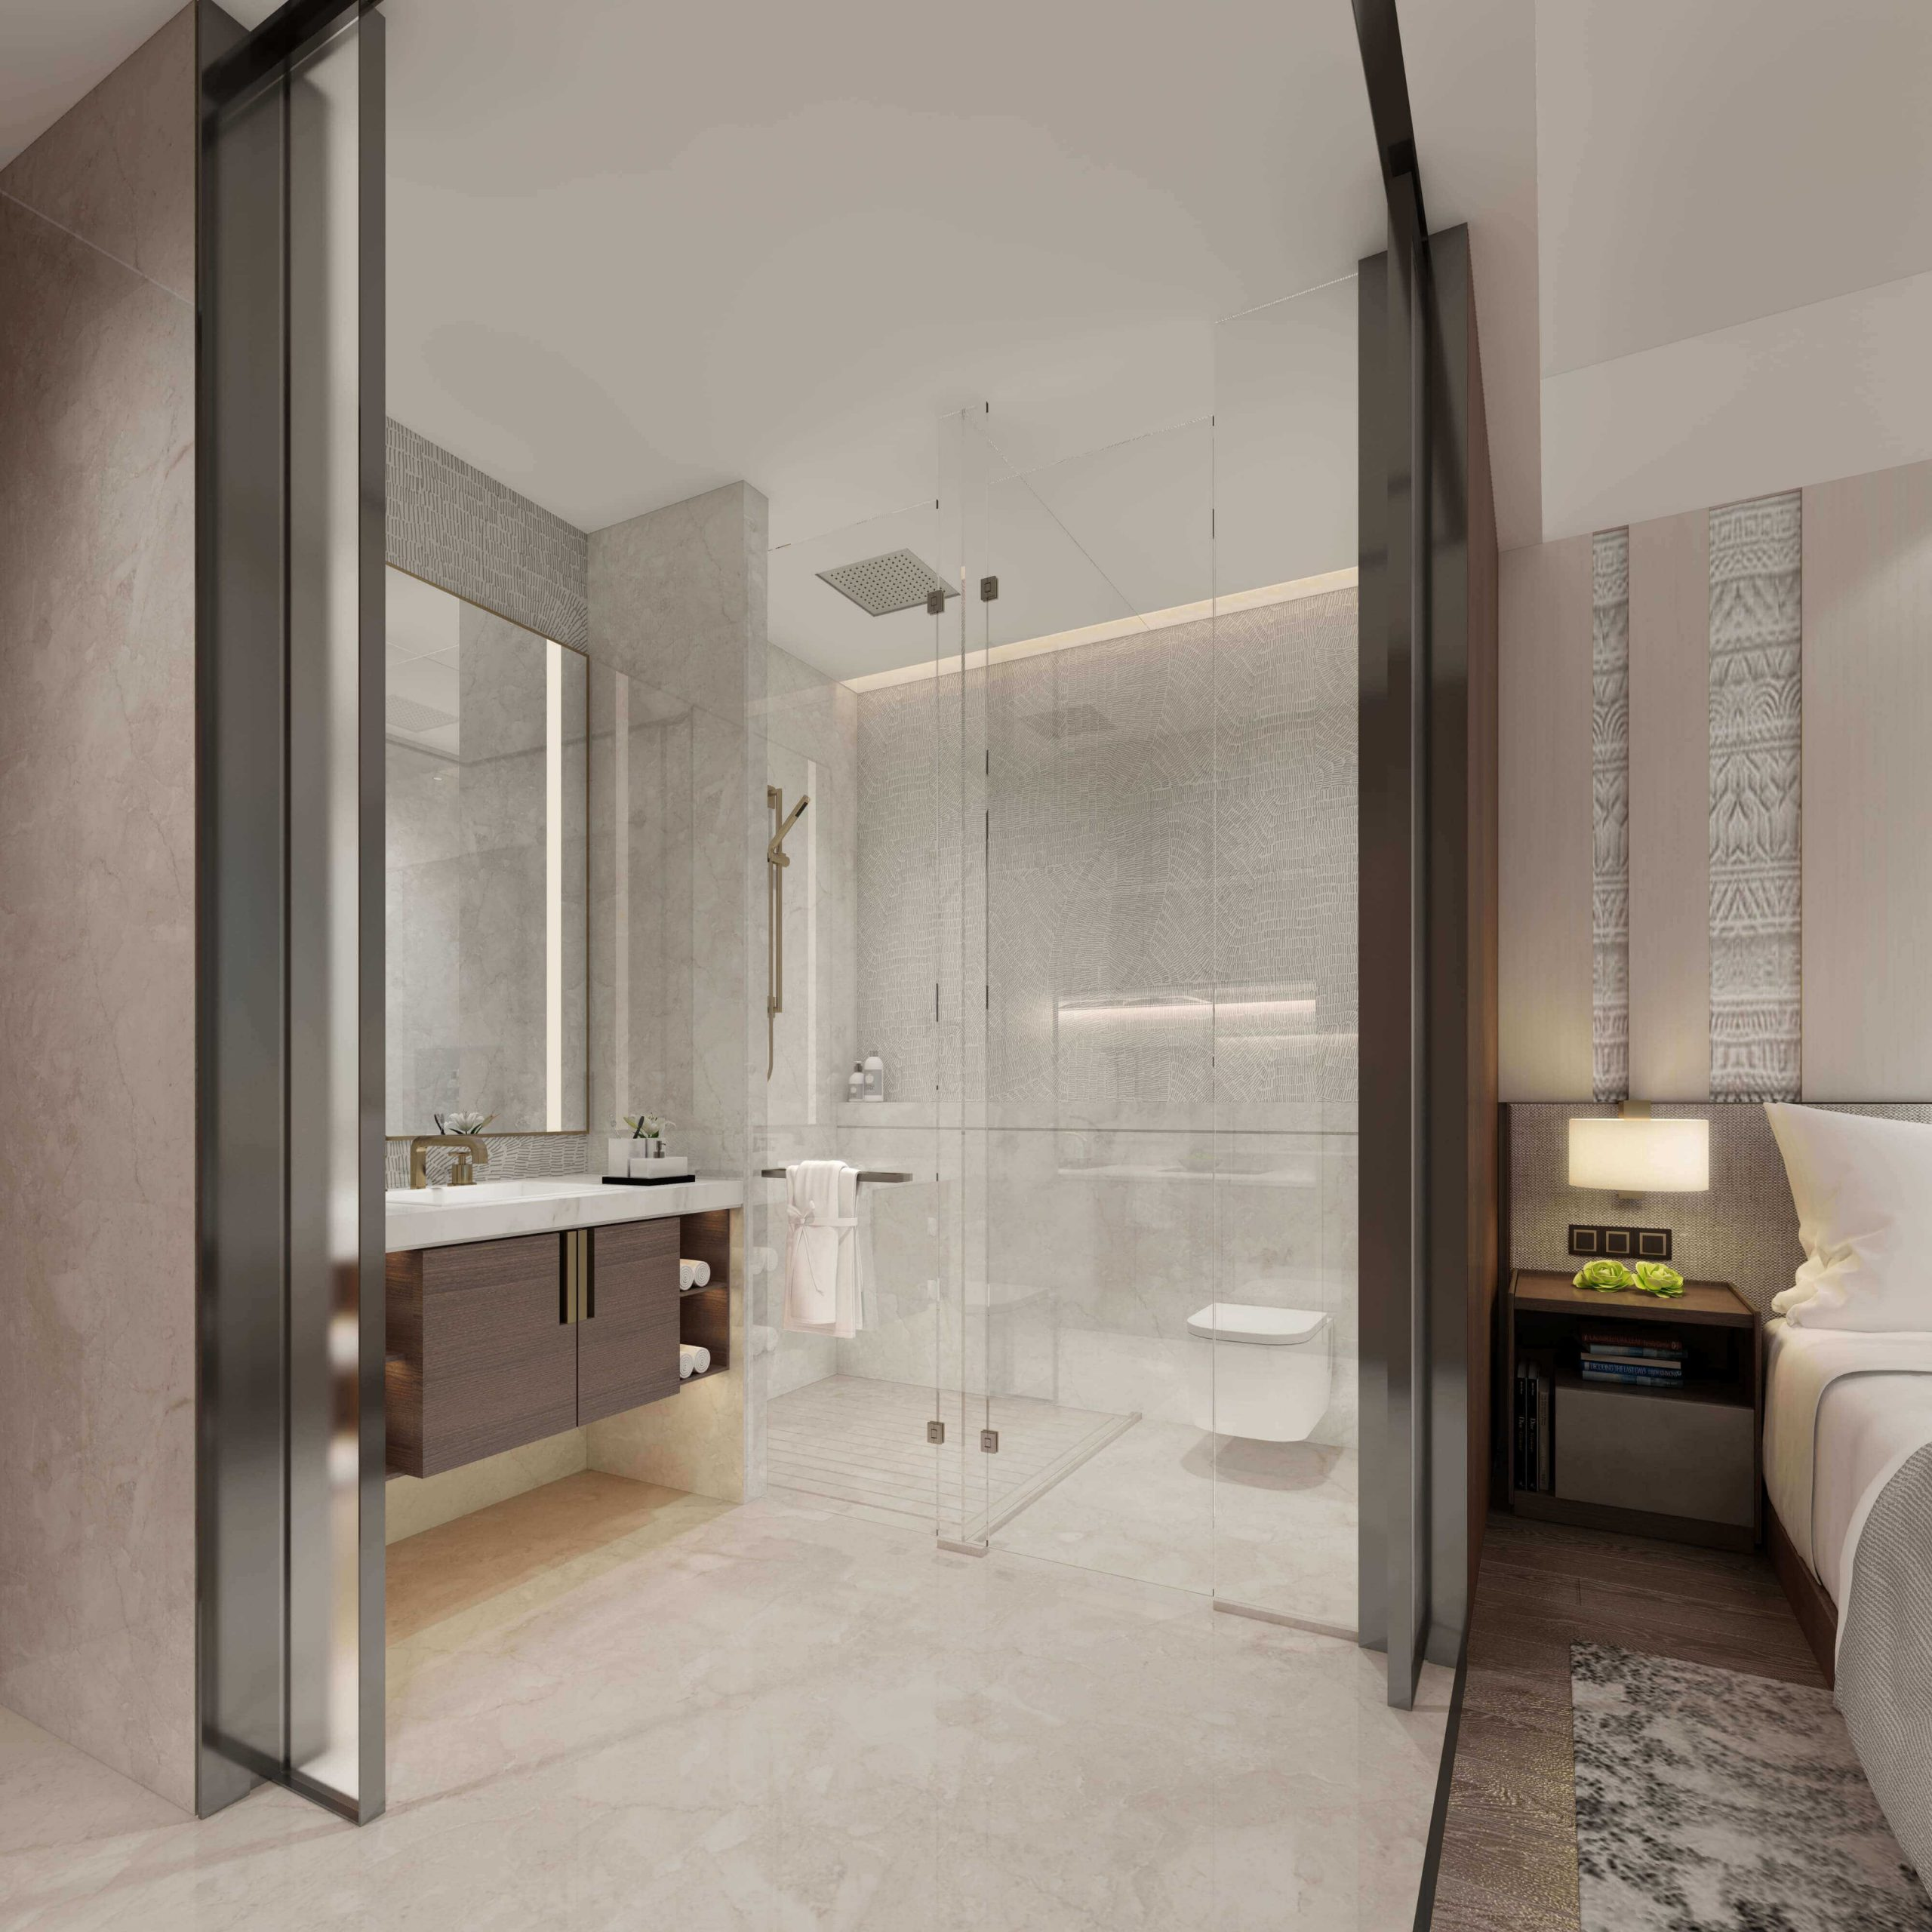 What do you need to know about bathroom 3D interior rendering?